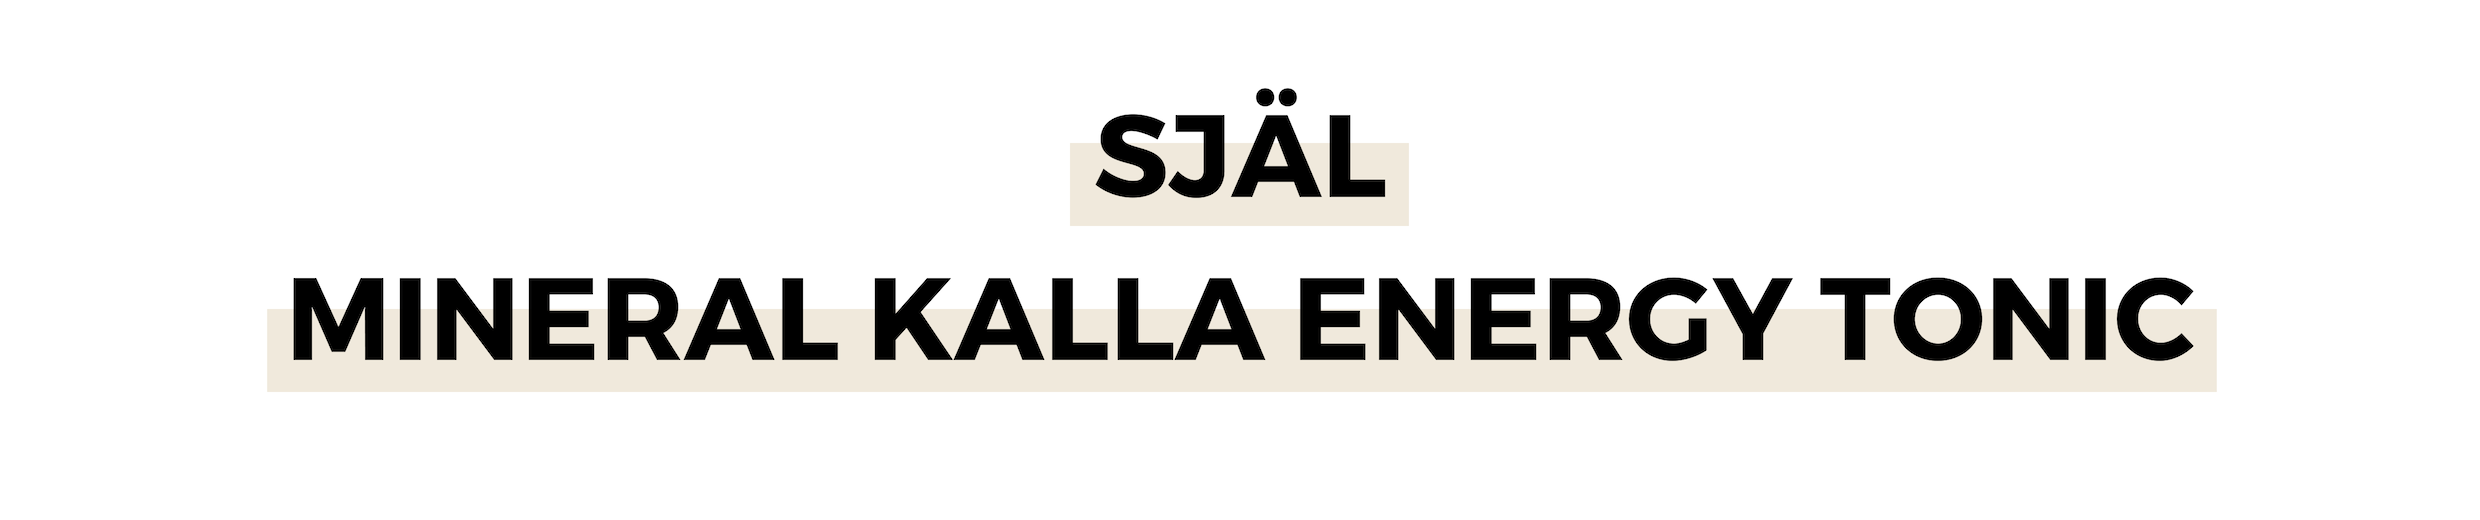 SJAL MINERAL KALLA ENERGY TONIC (2).png